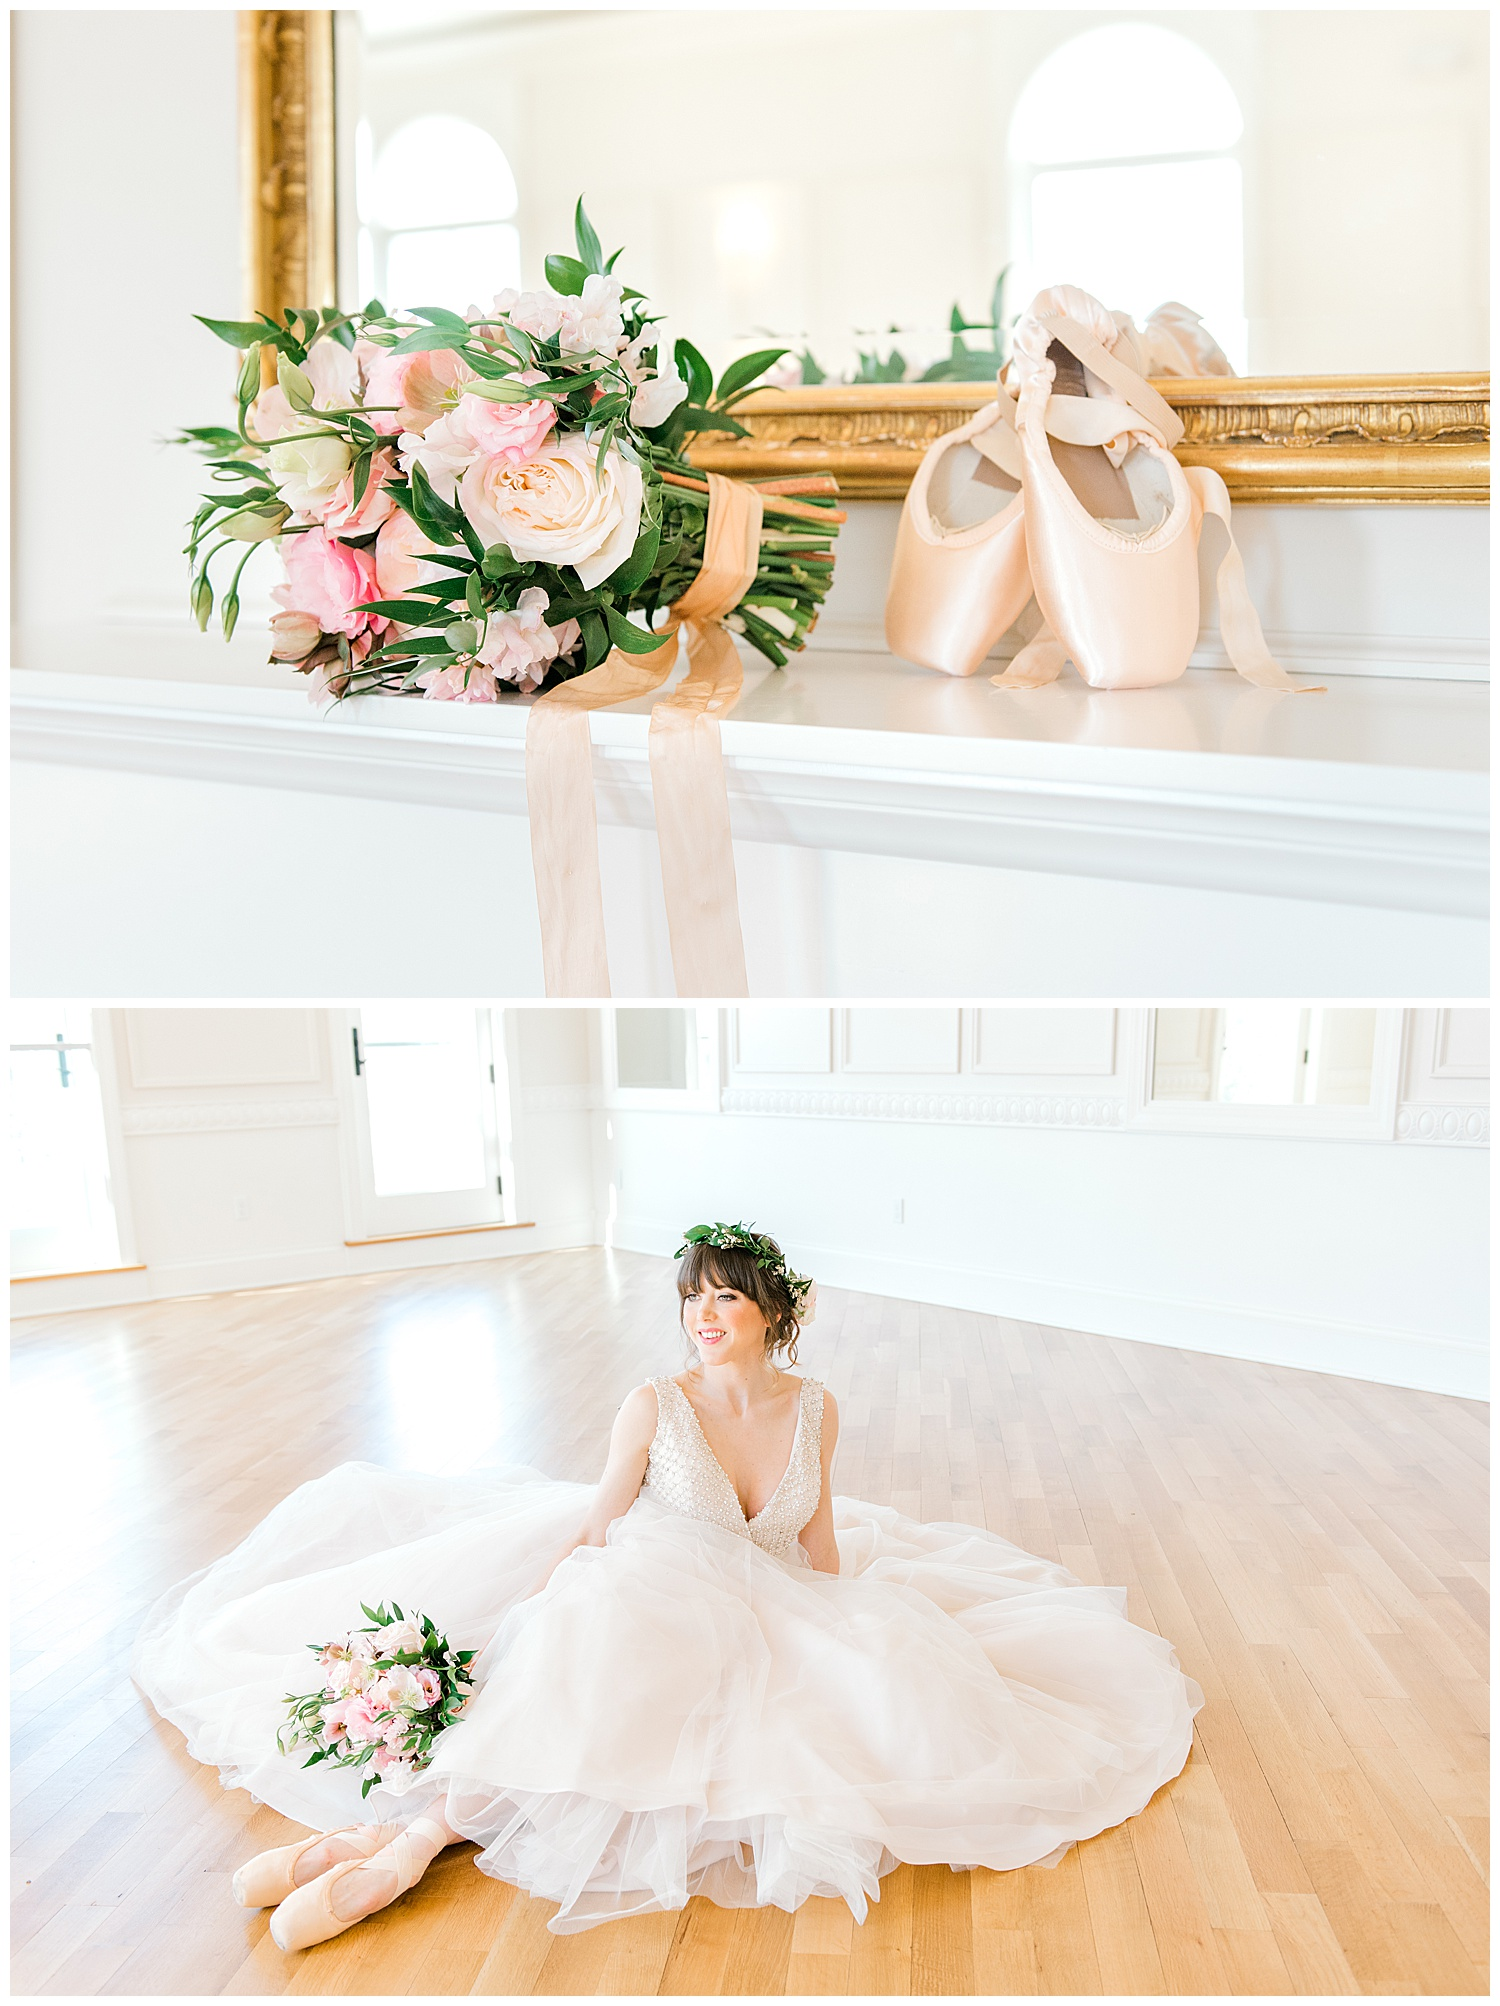 blush-ballerina-wedding-photography-newport-rhode-island-35.jpg